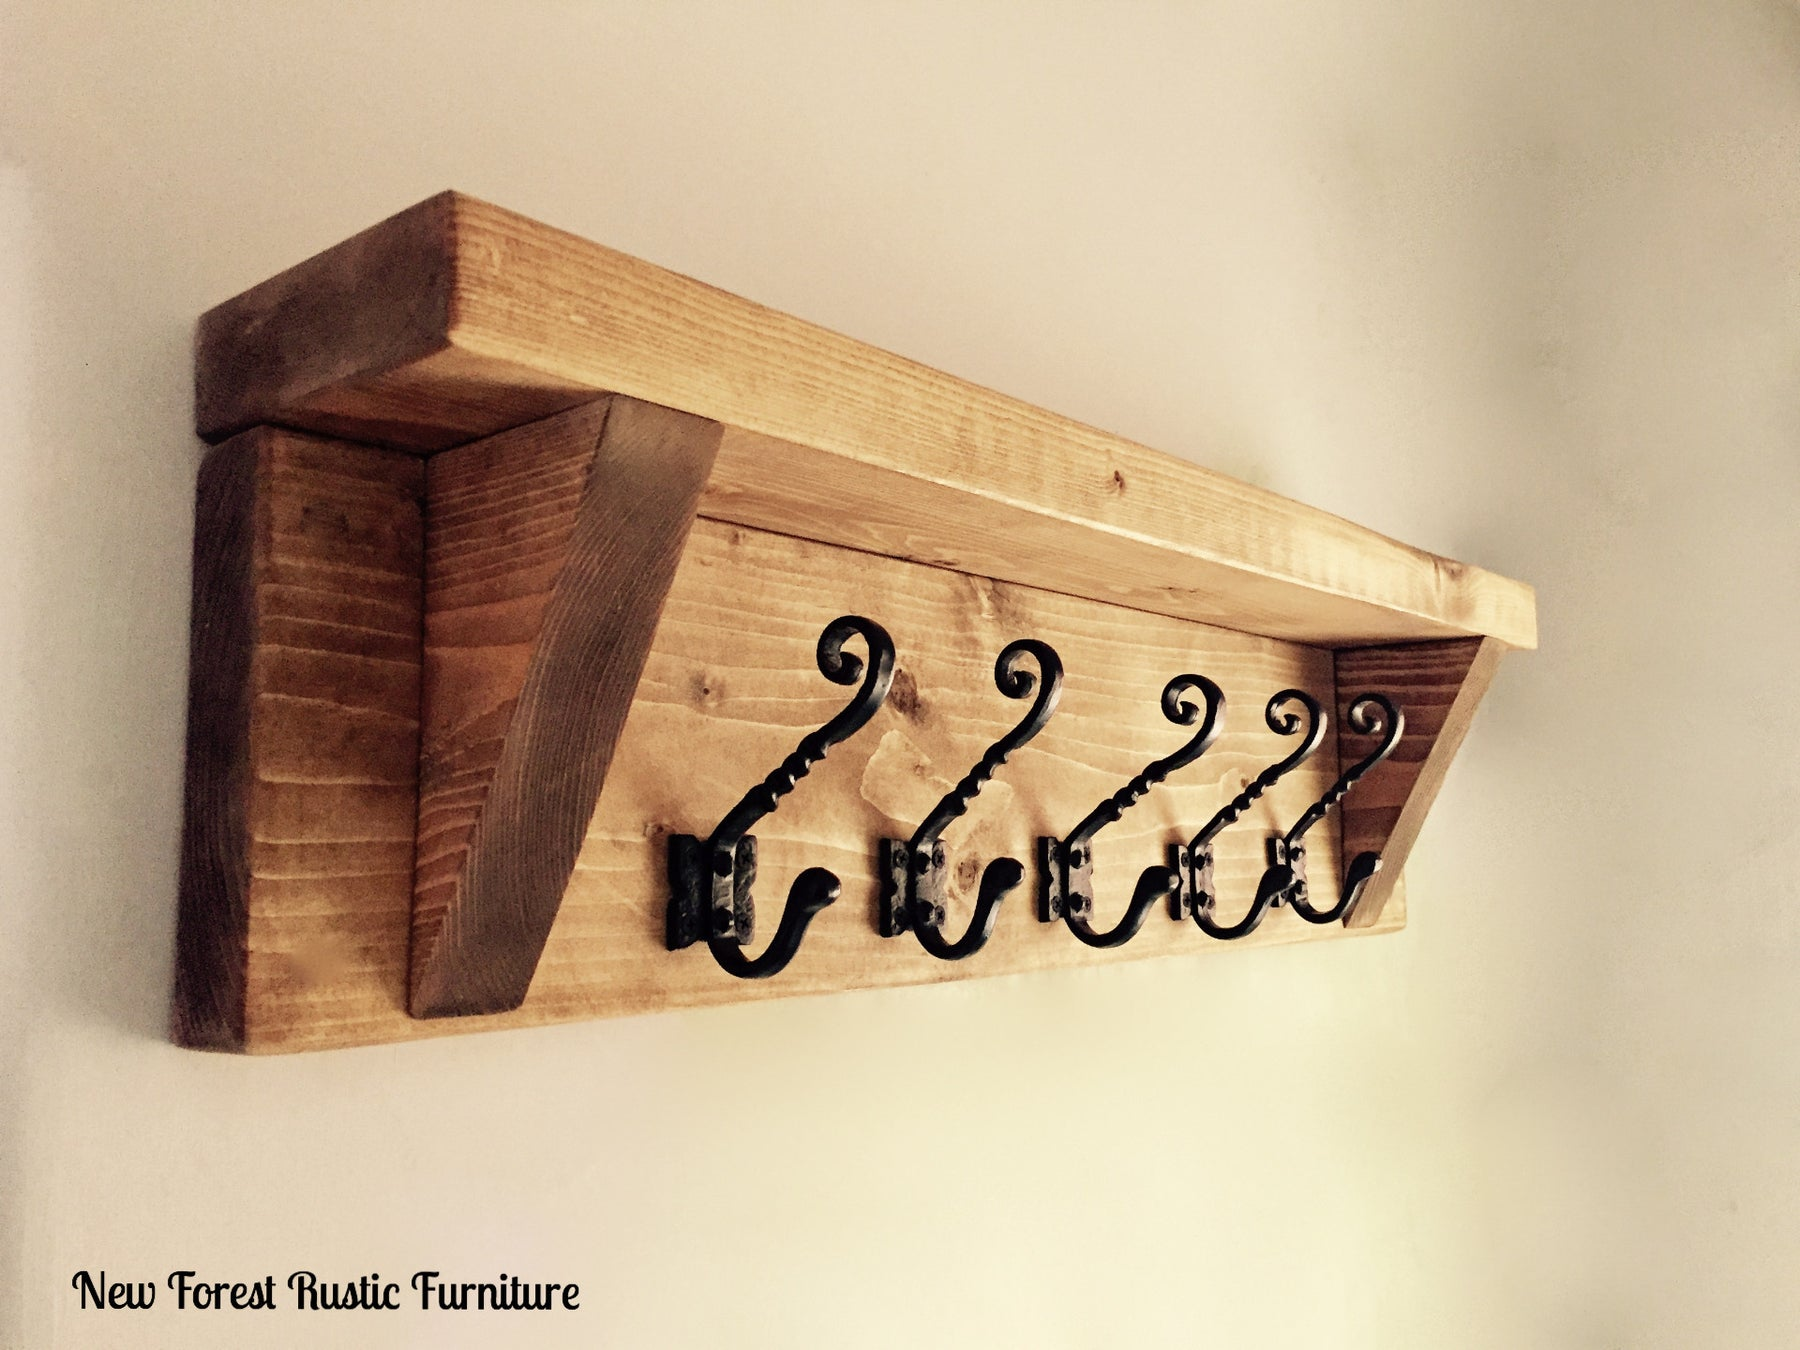 Chunky Rustic Wellow coat rack hook, complimented with black cast iron hooks, handcrafted by new forest rustic furniture. Finished in a Medium oak